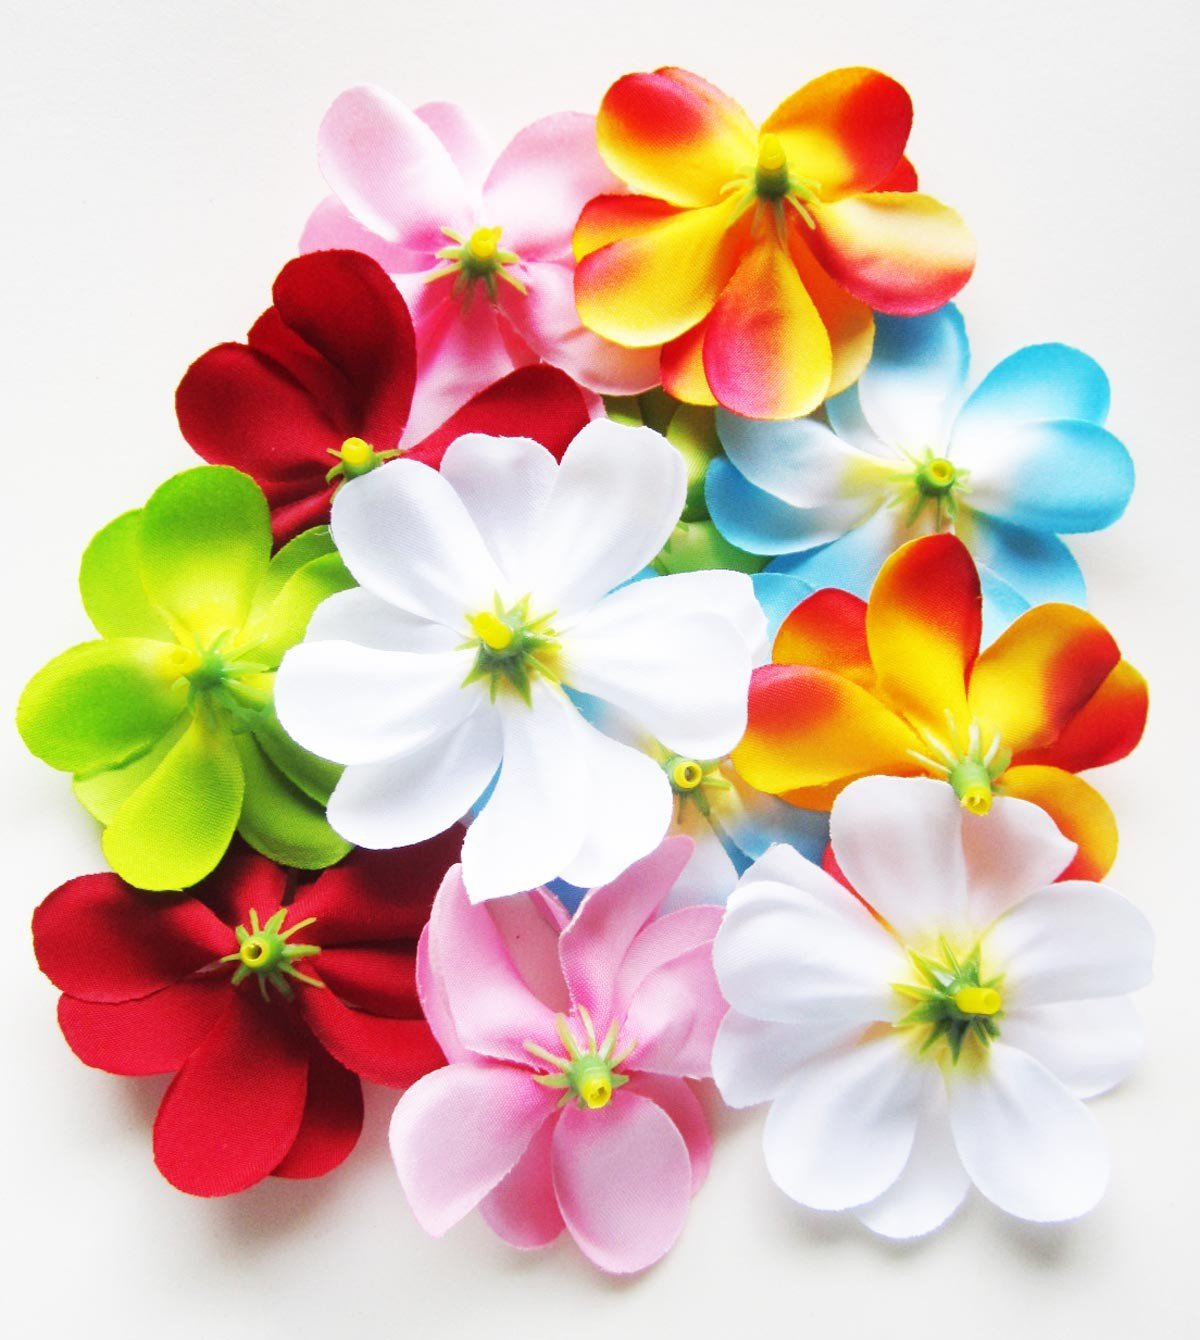 Amazon 24 assorted hawaiian plumeria frangipani silk flower amazon 24 assorted hawaiian plumeria frangipani silk flower heads 3 artificial flowers head fabric floral supplies wholesale lot for wedding izmirmasajfo